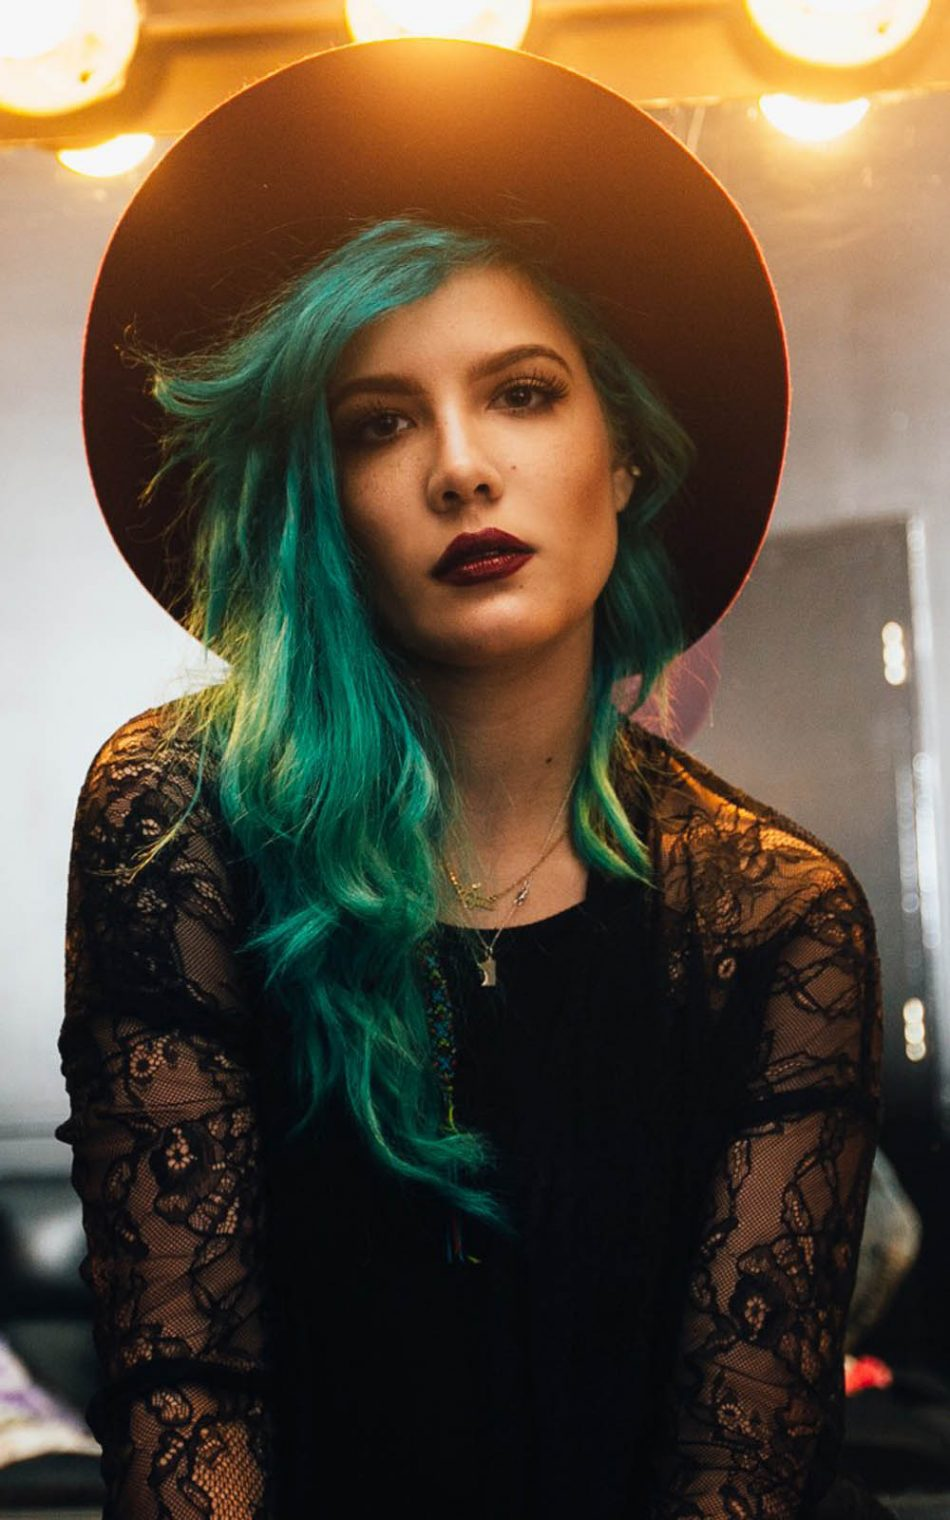 Halsey Wallpaper Quotes Download Halsey 2017 Free Pure 4k Ultra Hd Mobile Wallpaper